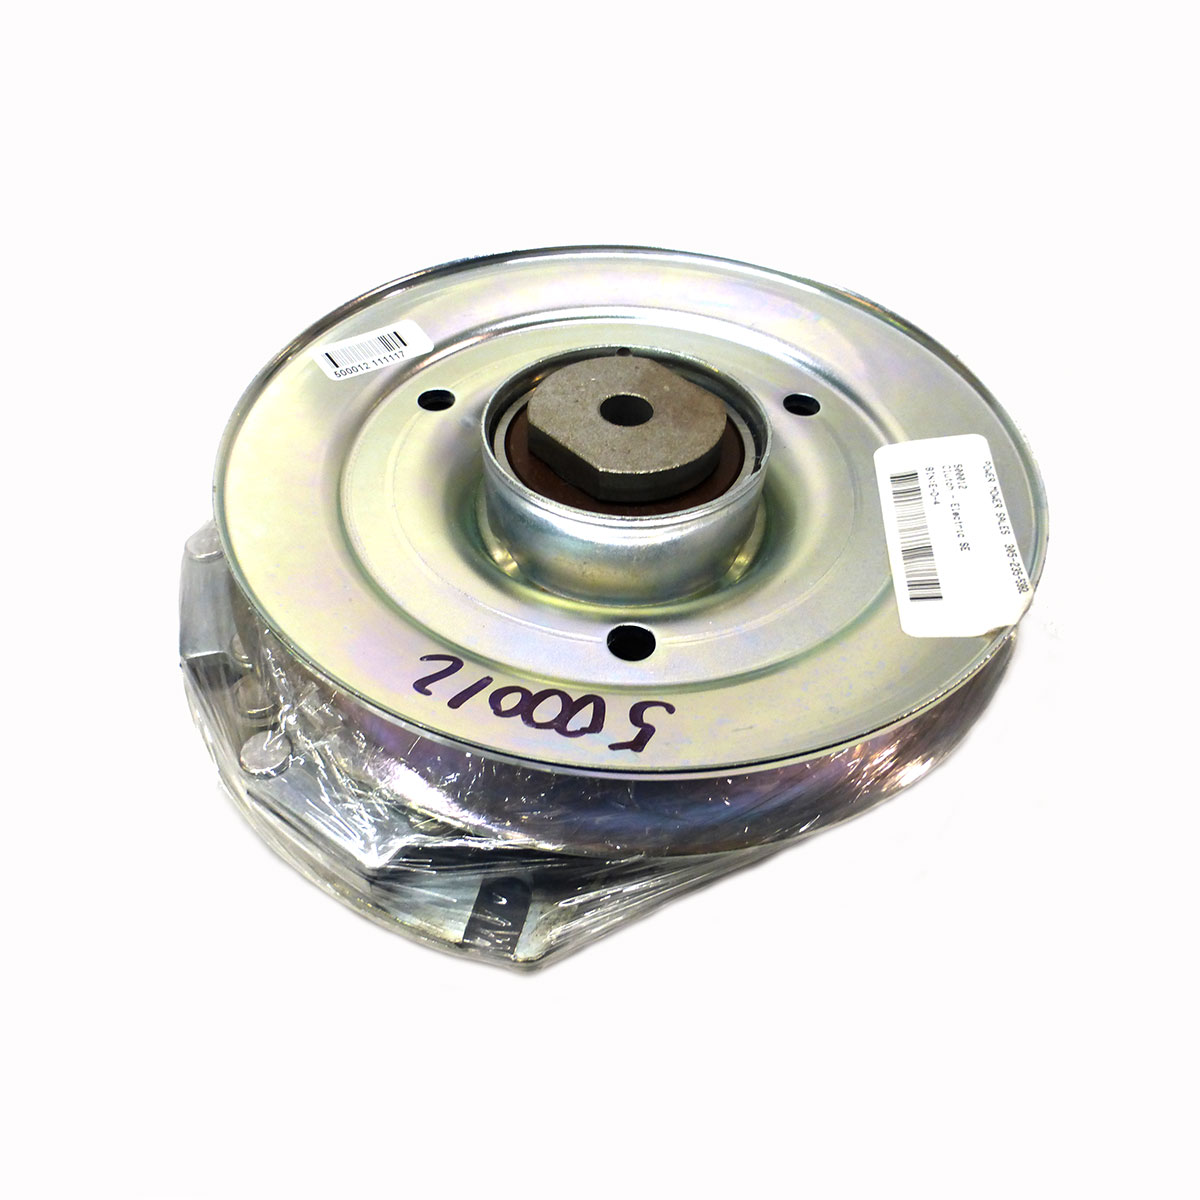 500012 Dixie Chopper Silver Eagle Electric Clutch